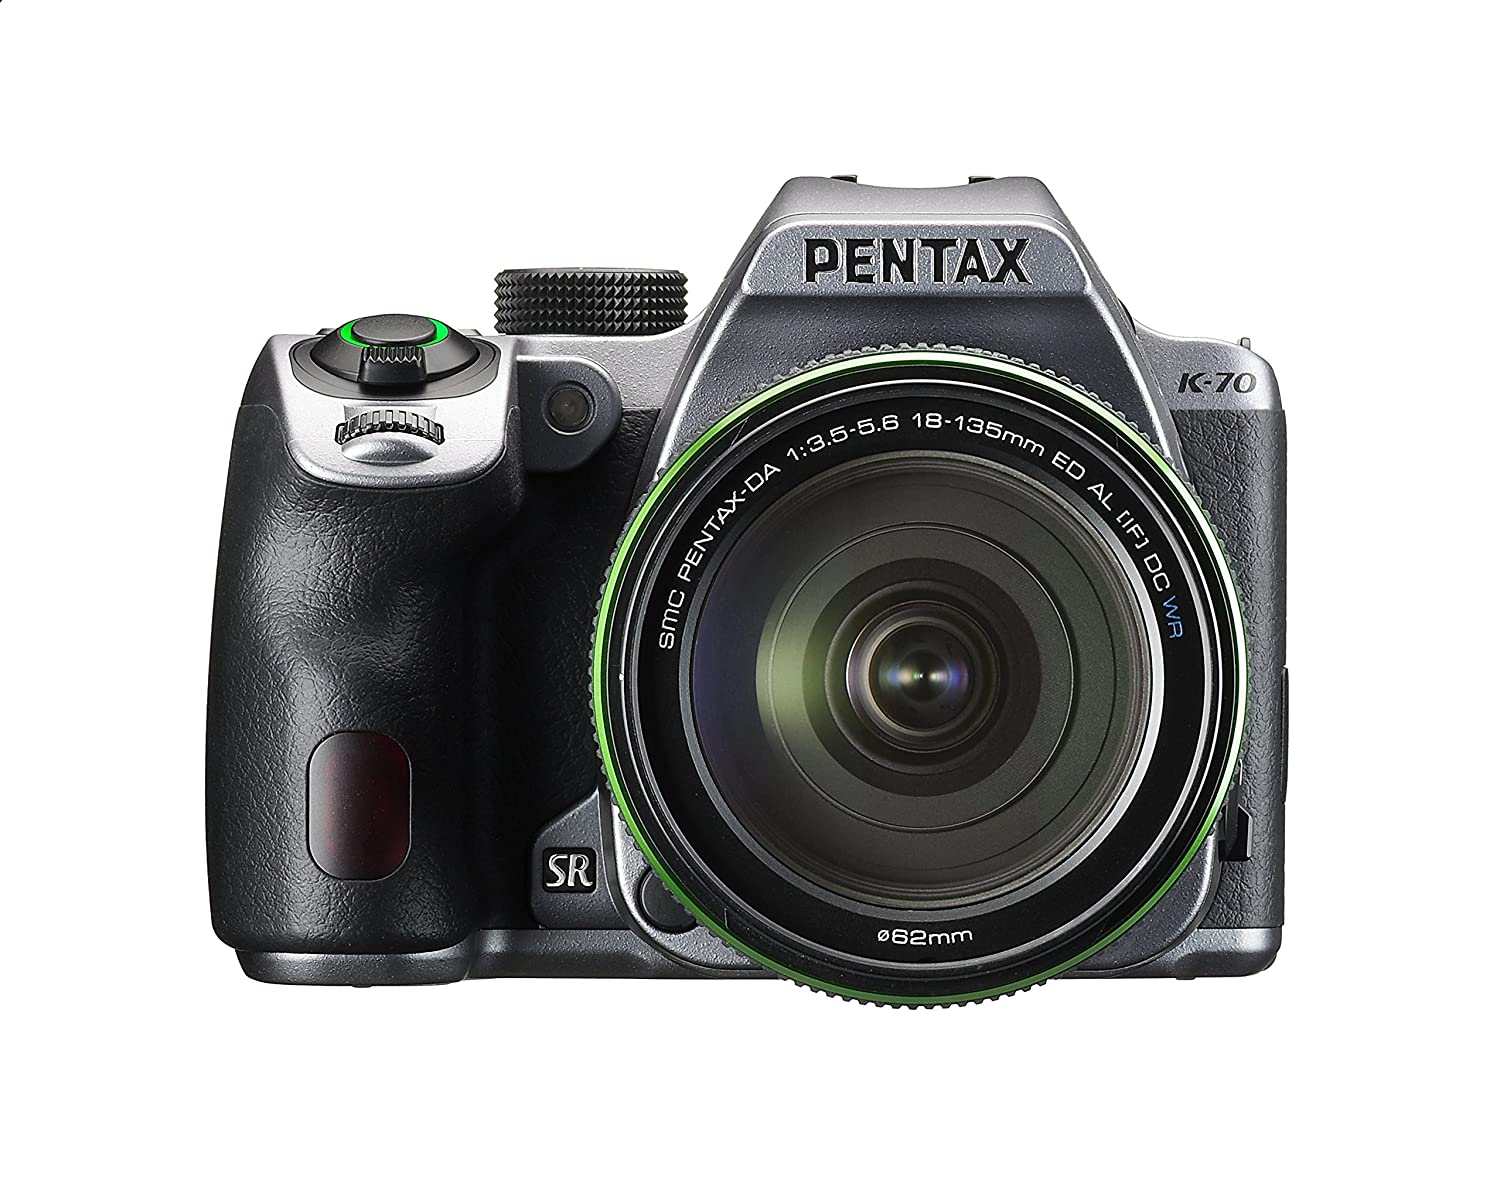 Pentax K-70 Weather-Sealed DSLR Camera with 18-135mm Lens (Silver)